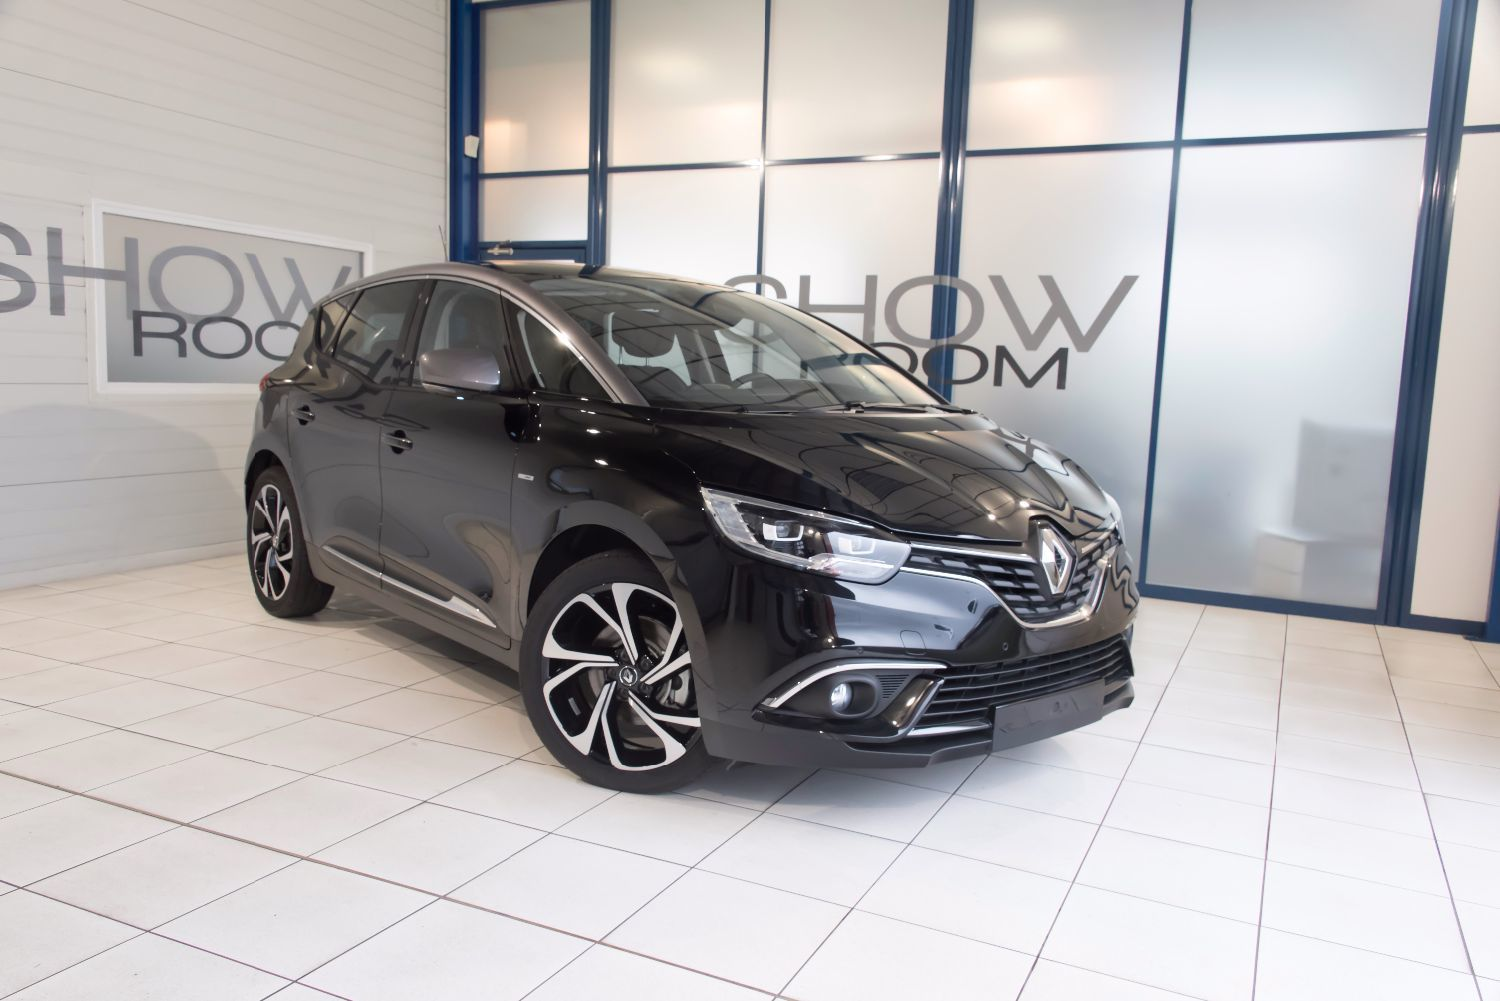 voiture renault sc nic iii iv 1 2 tce 130 ch energy bose occasion essence 2017 20 km. Black Bedroom Furniture Sets. Home Design Ideas